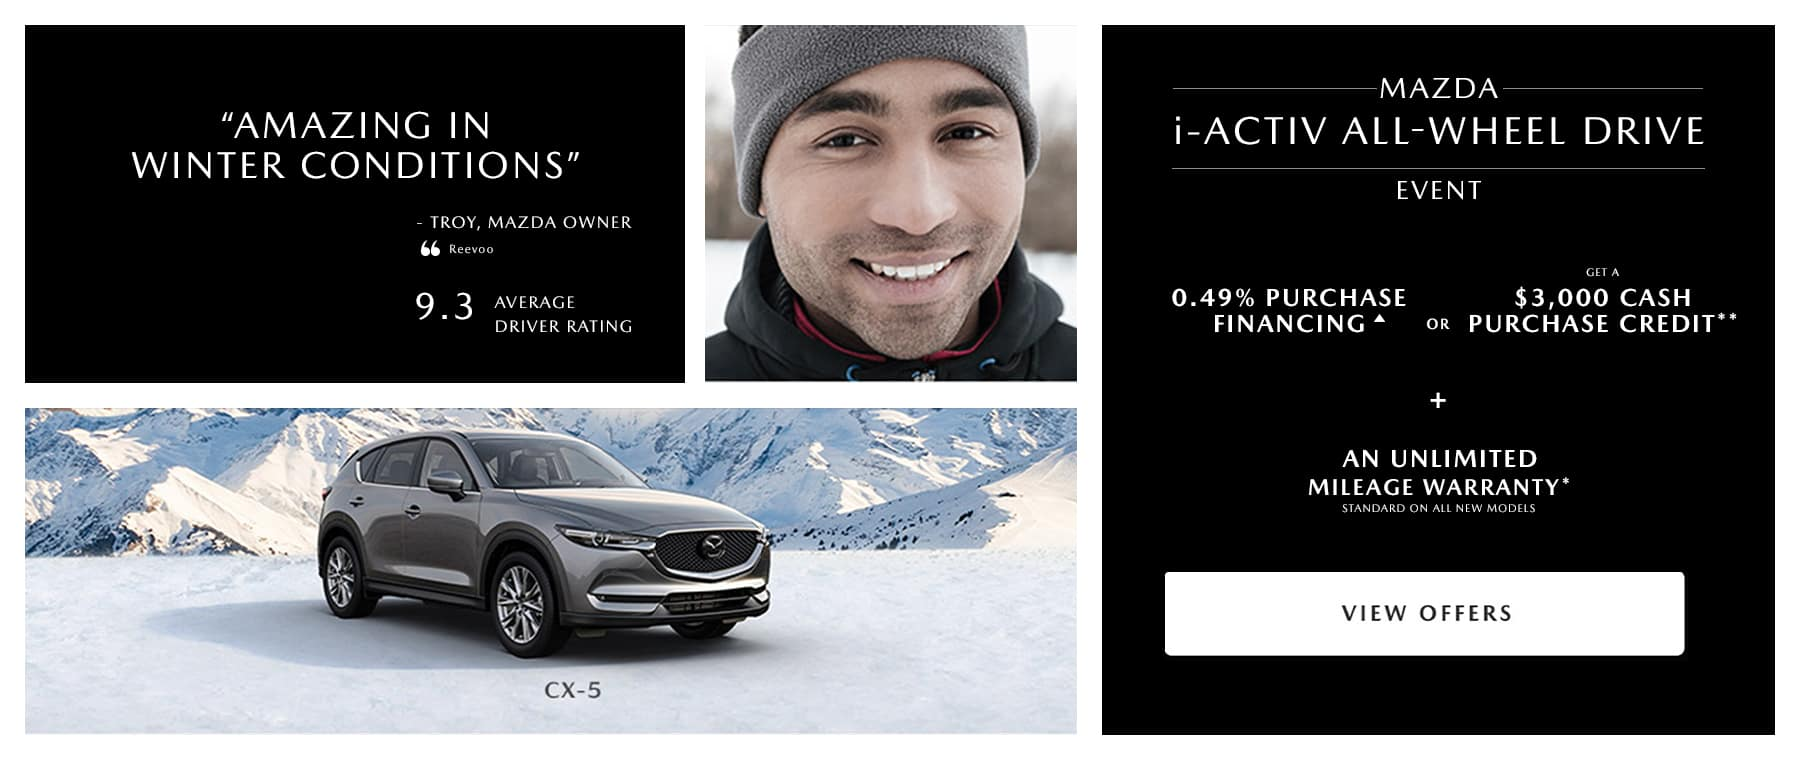 smiling man with gray mazda SUV